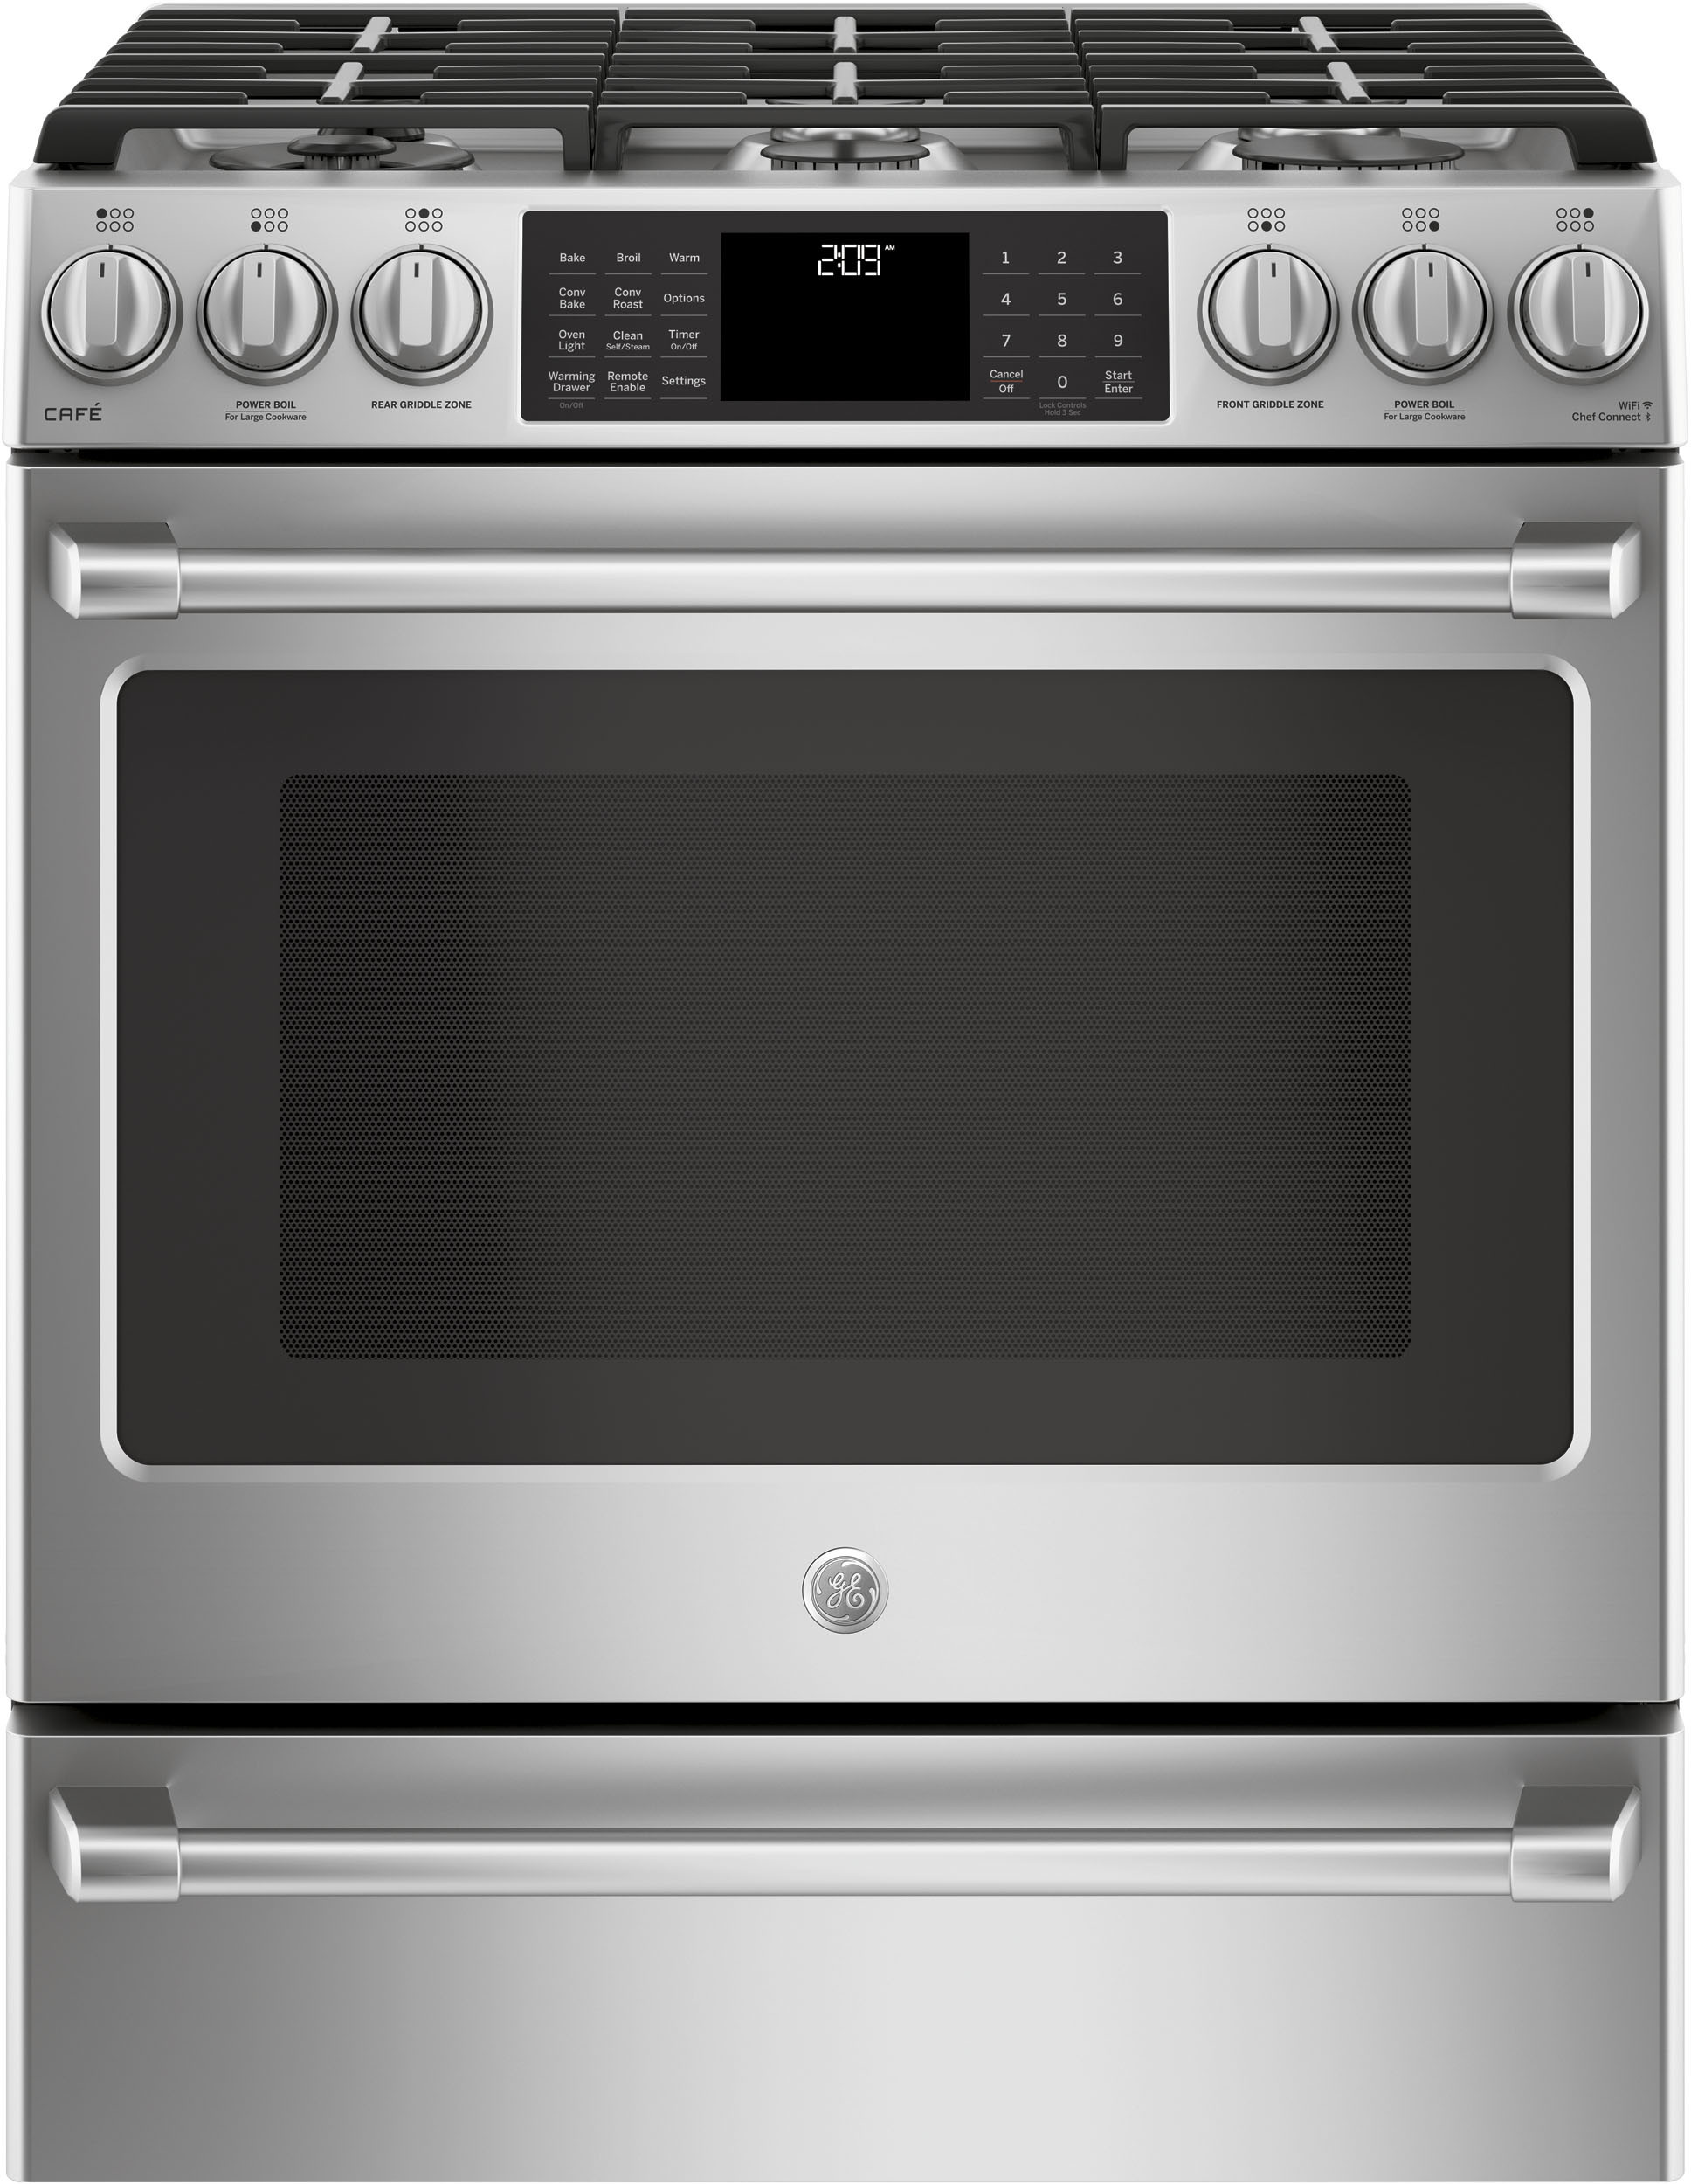 Cafe C2s986selss 30 Inch Slide In Dual Fuel Smart Range With 6 Sealed Burners 5 6 Cu Ft Oven Capacity Tri Ring Burner Simmer Burner Continuous Grates Chef Connect Convection Griddle Meat Probe Self Clean And